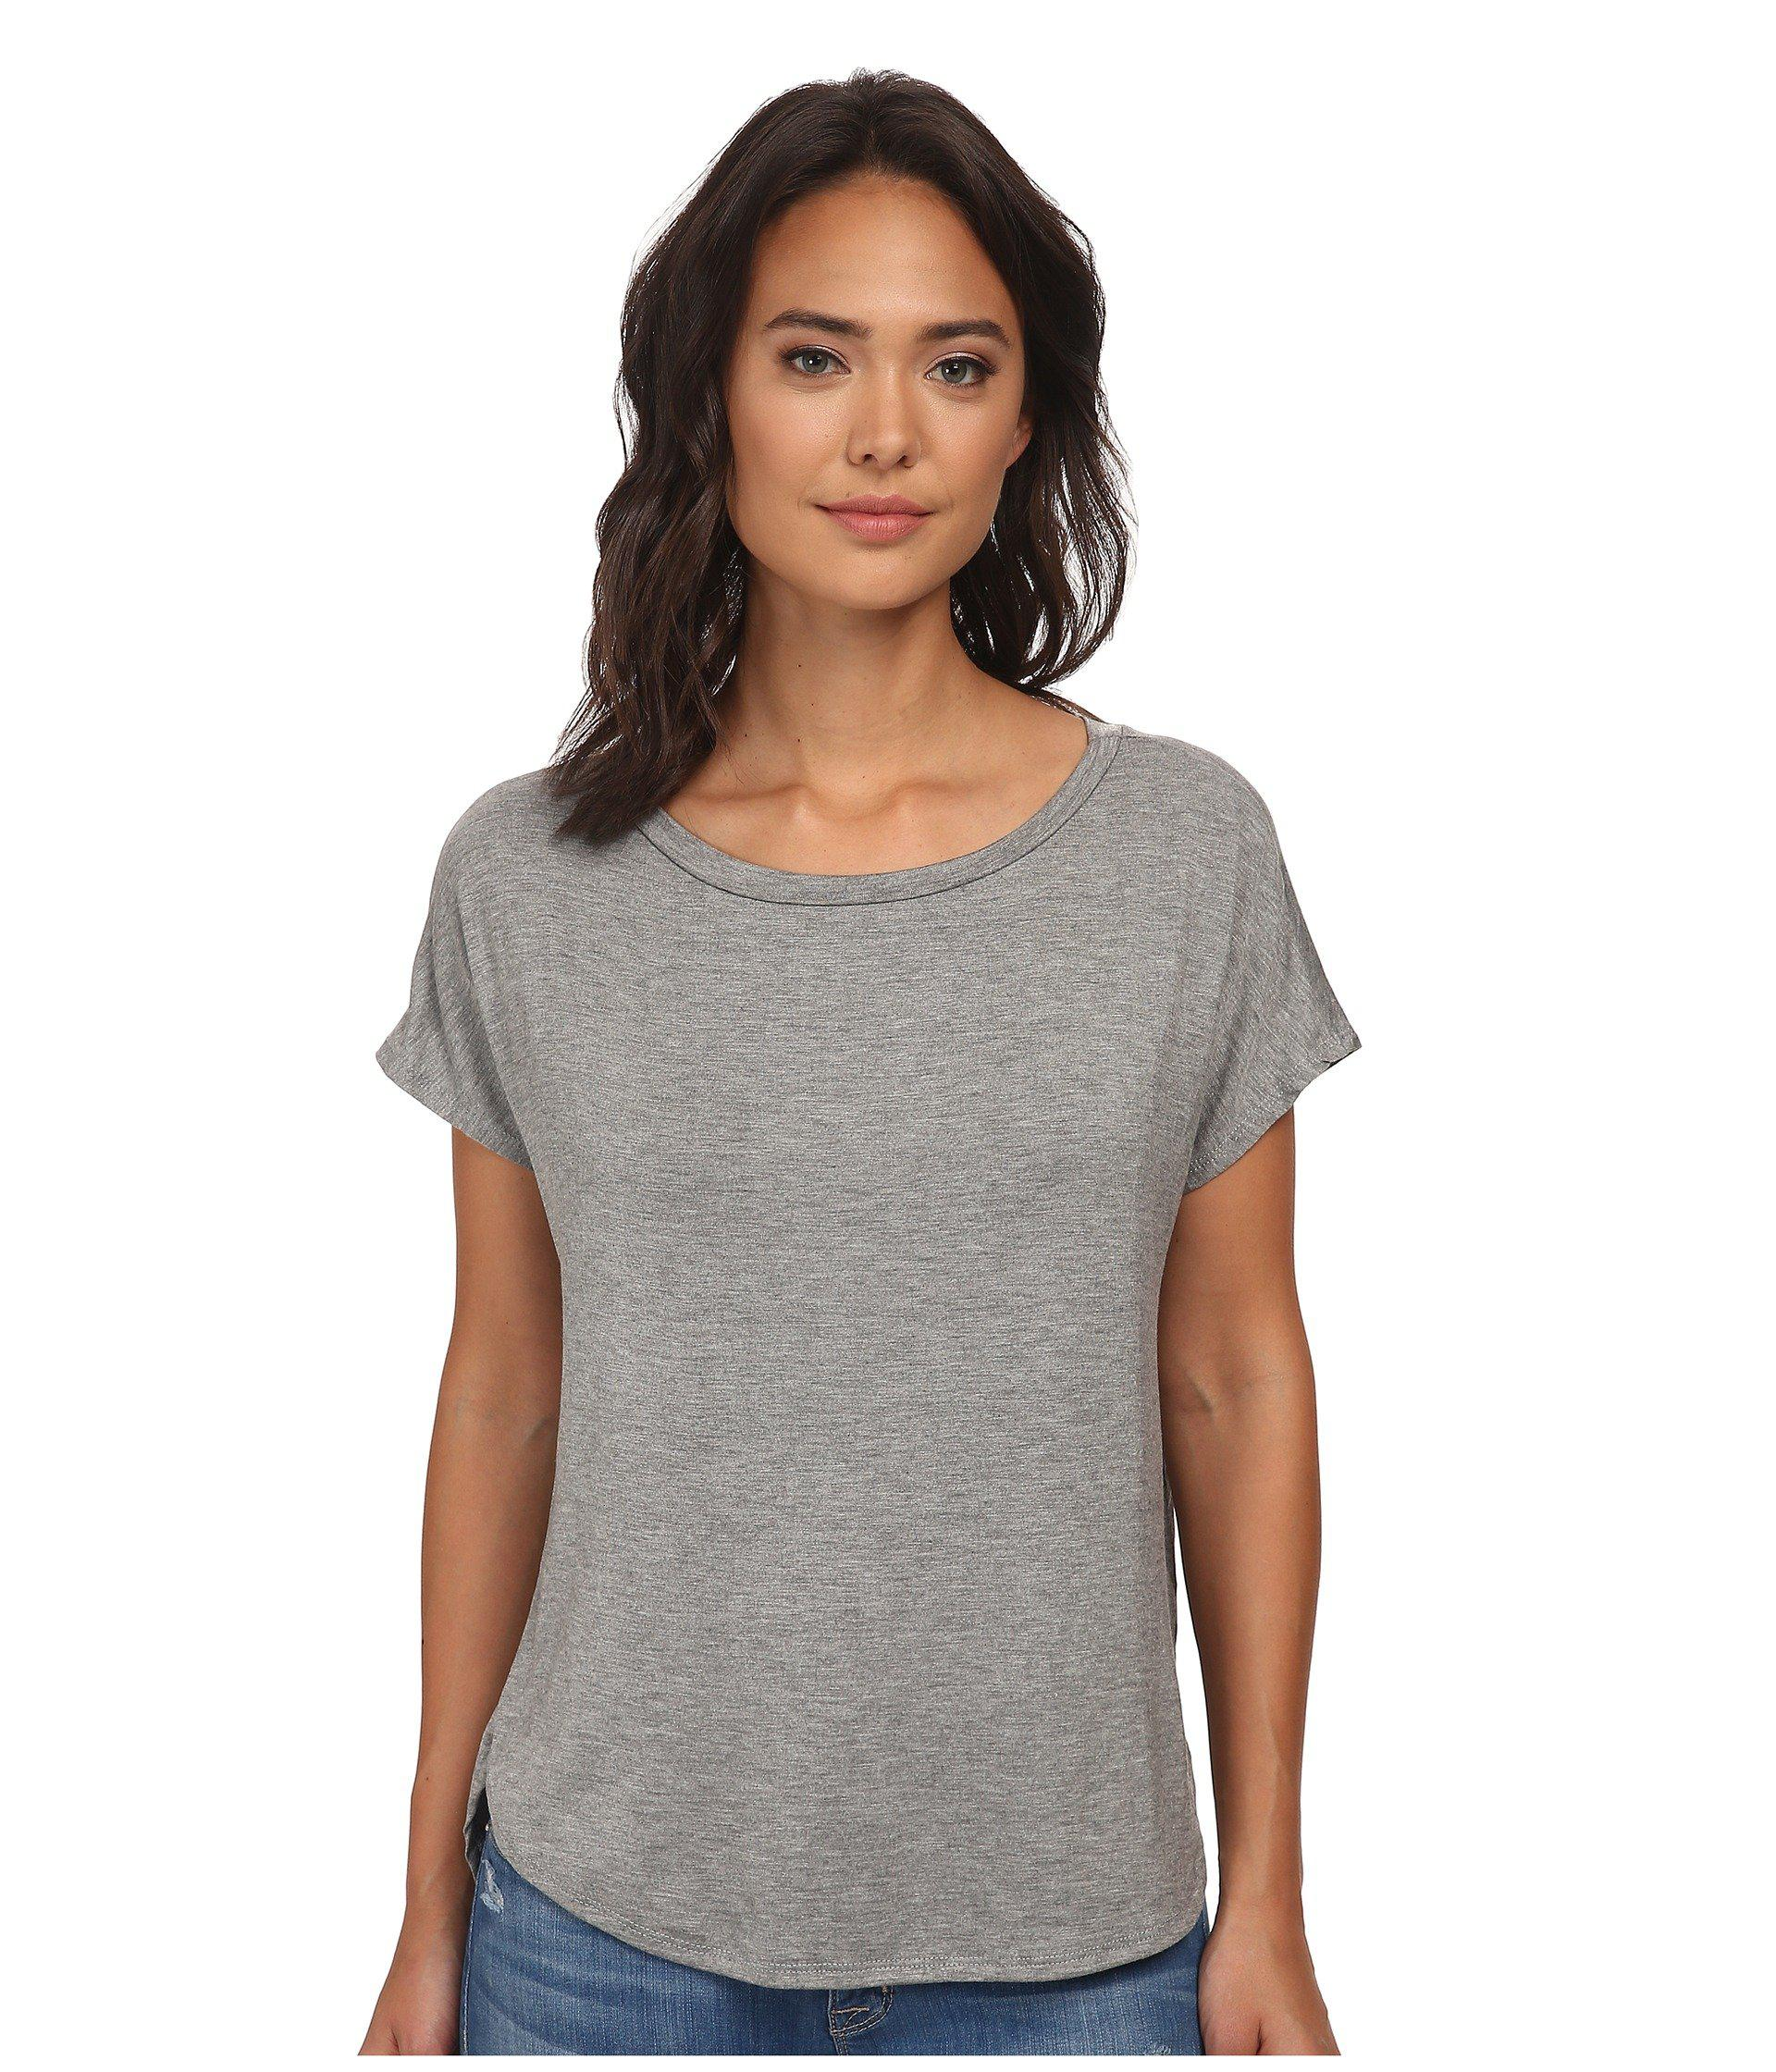 e52a910f91526 Lyst - Culture Phit Karyn Short Sleeve Comfy Top in Gray